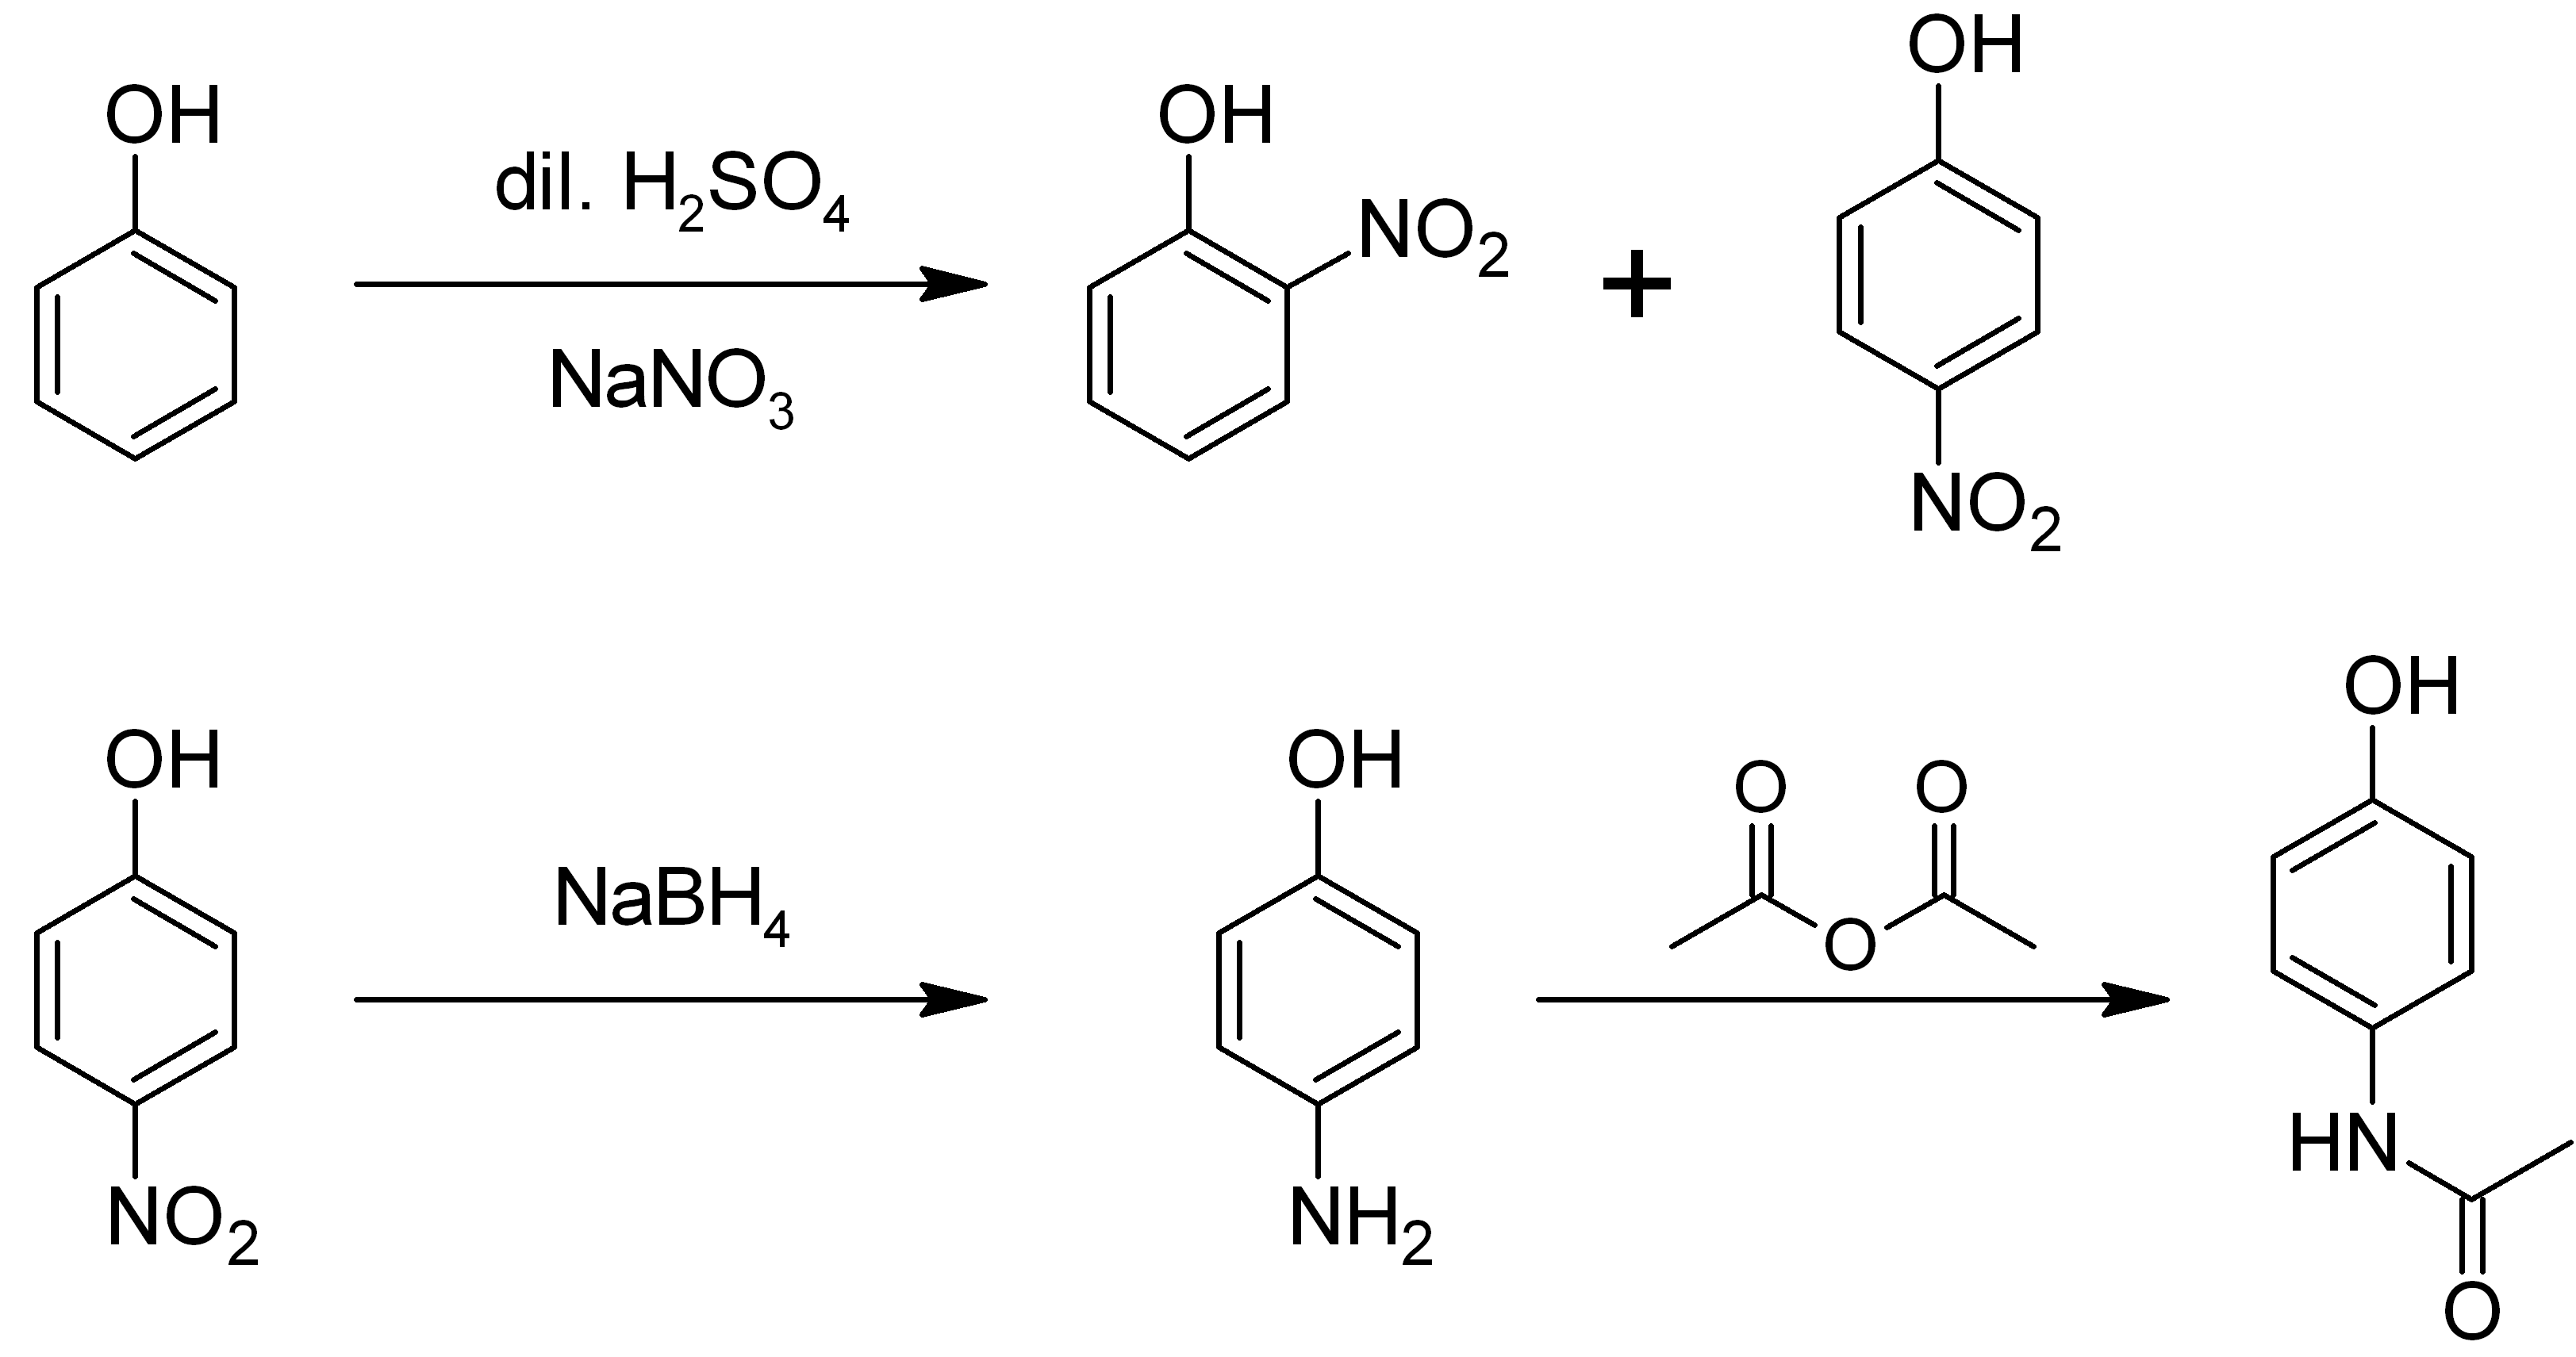 amide synthesis of phenacetin What role does the sodium acetate play in the synthesis of the amide functional group of, hire chemistry expert of the amide functional group of phenacetin.